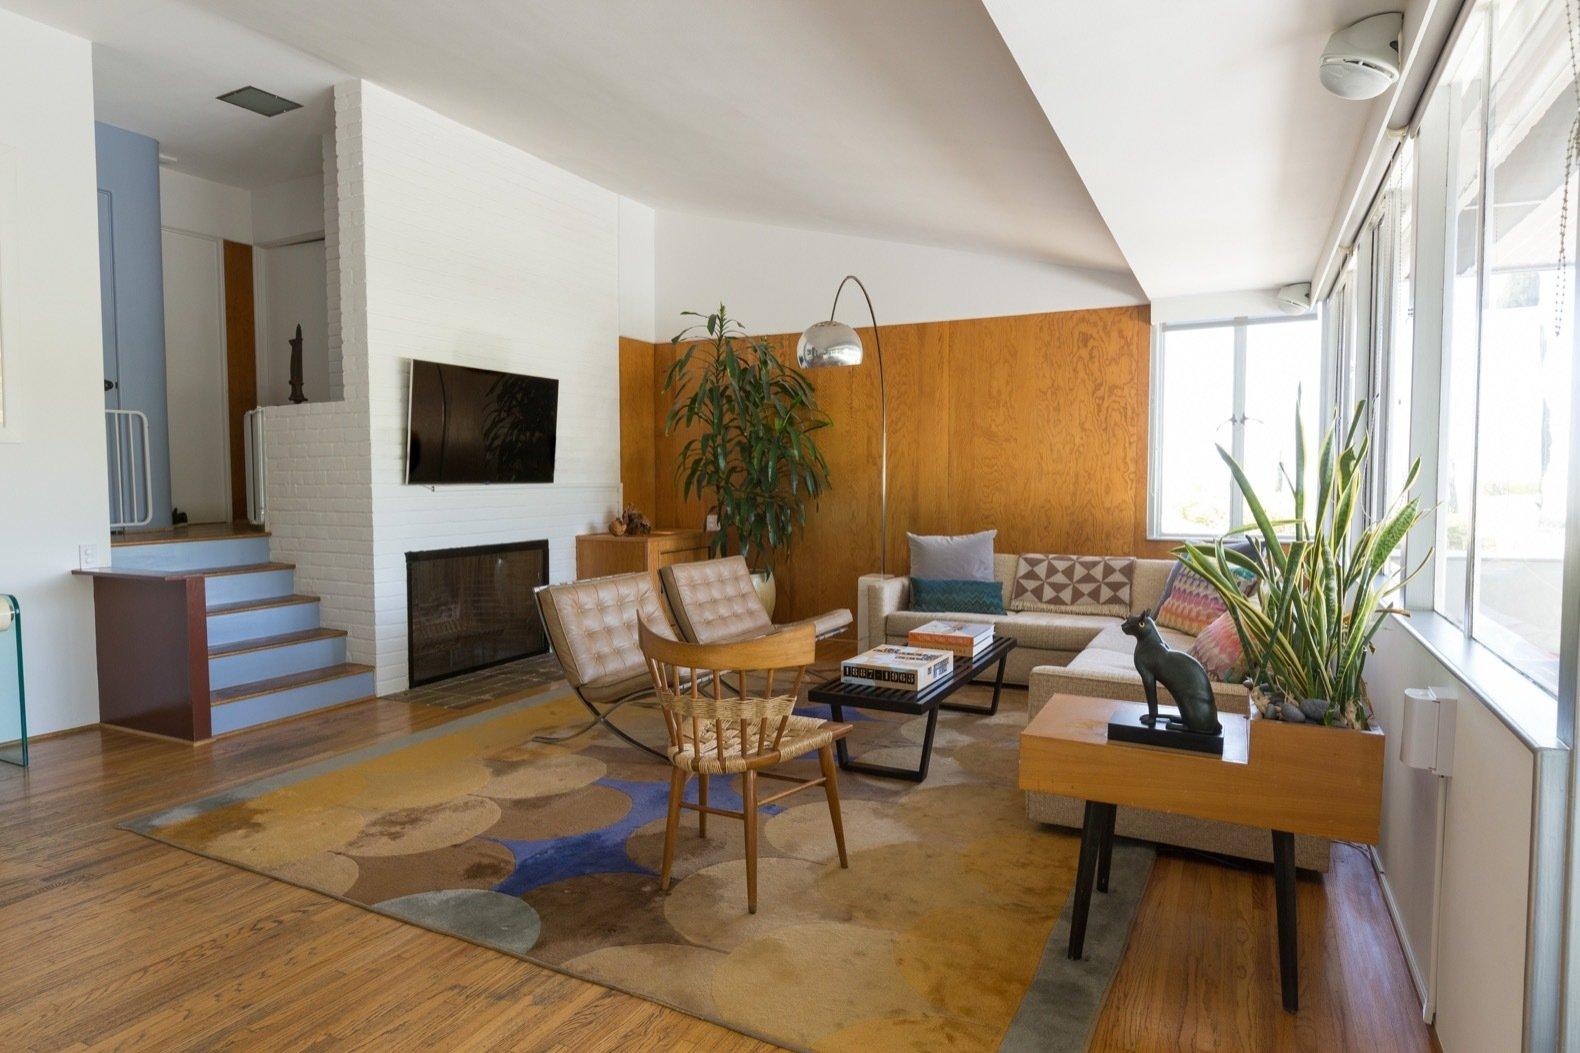 Living Room, Coffee Tables, Floor Lighting, Medium Hardwood Floor, Chair, Sofa, Rug Floor, and End Tables Wood paneling adds a touch of warmth to the great room.   Photo 7 of 15 in Calling All Richard Neutra Fans—His Bonnet House in L.A. Hits the Market at $1.8M